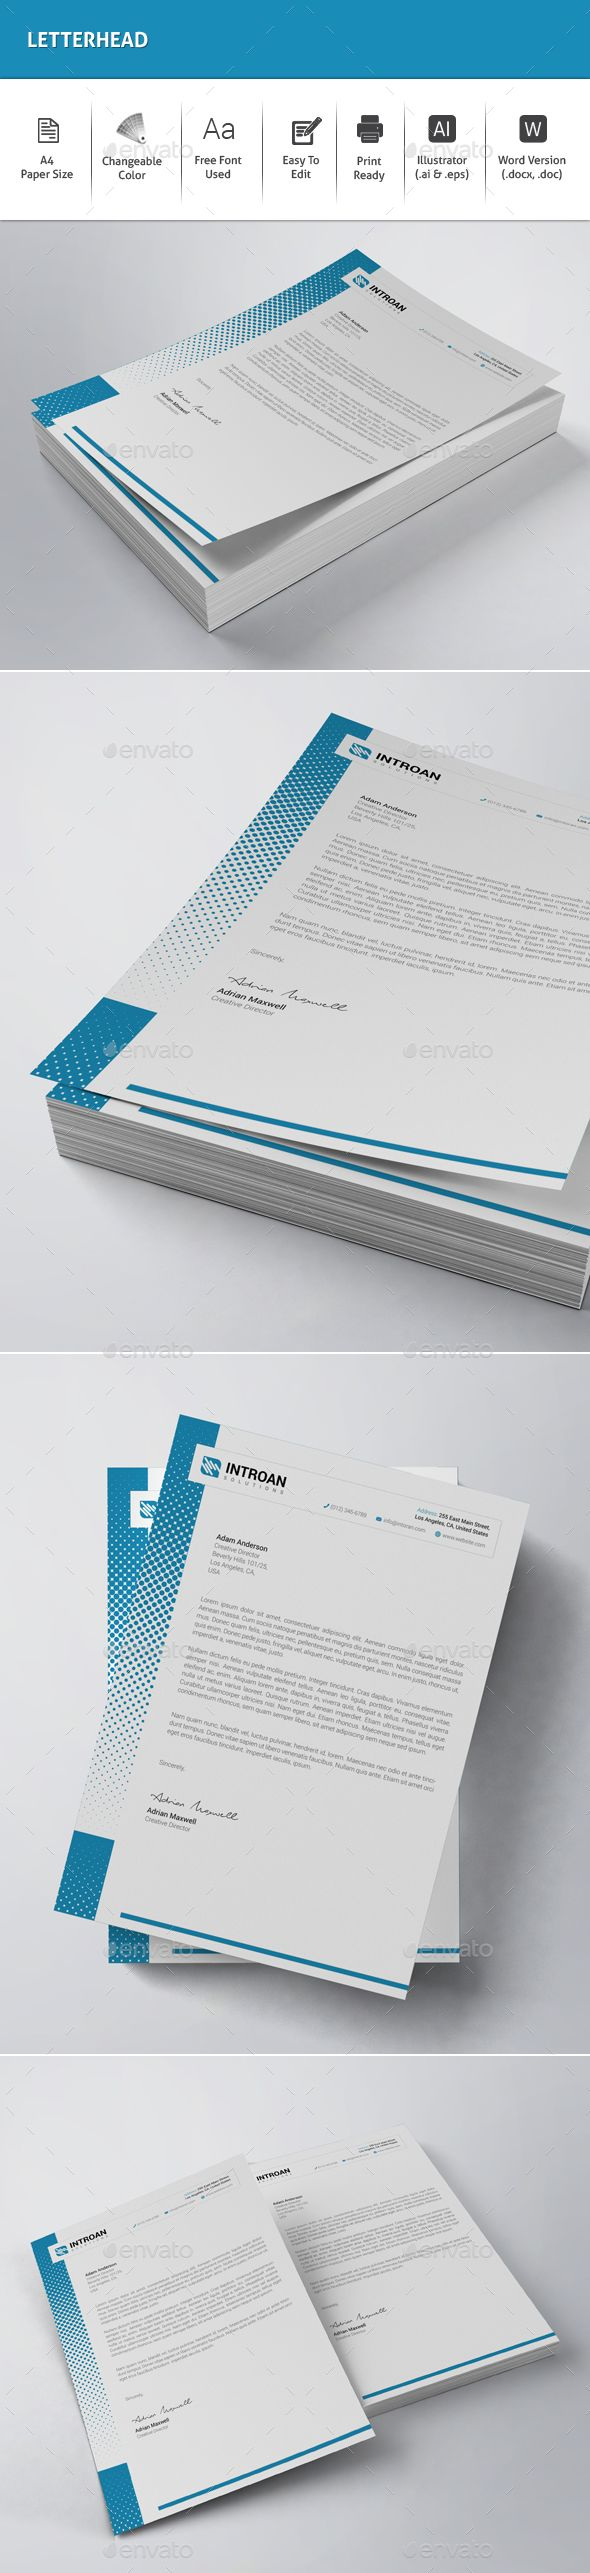 29 best Personal Marketing images on Pinterest | Resume templates ...